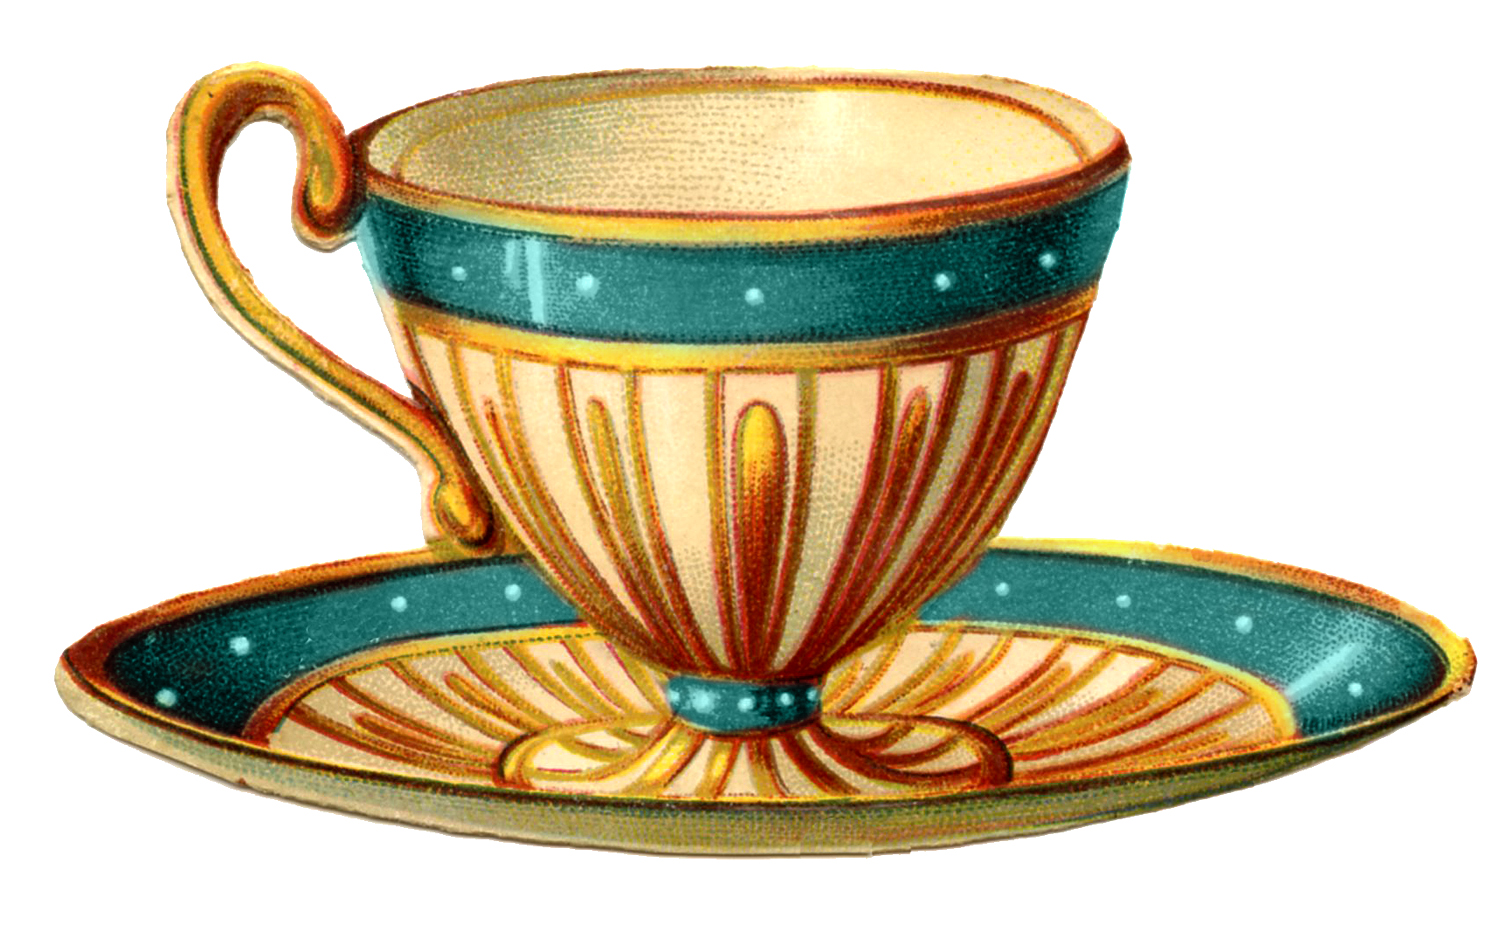 Vintage Tea Cup Clipart Vintage Graphics Pretty